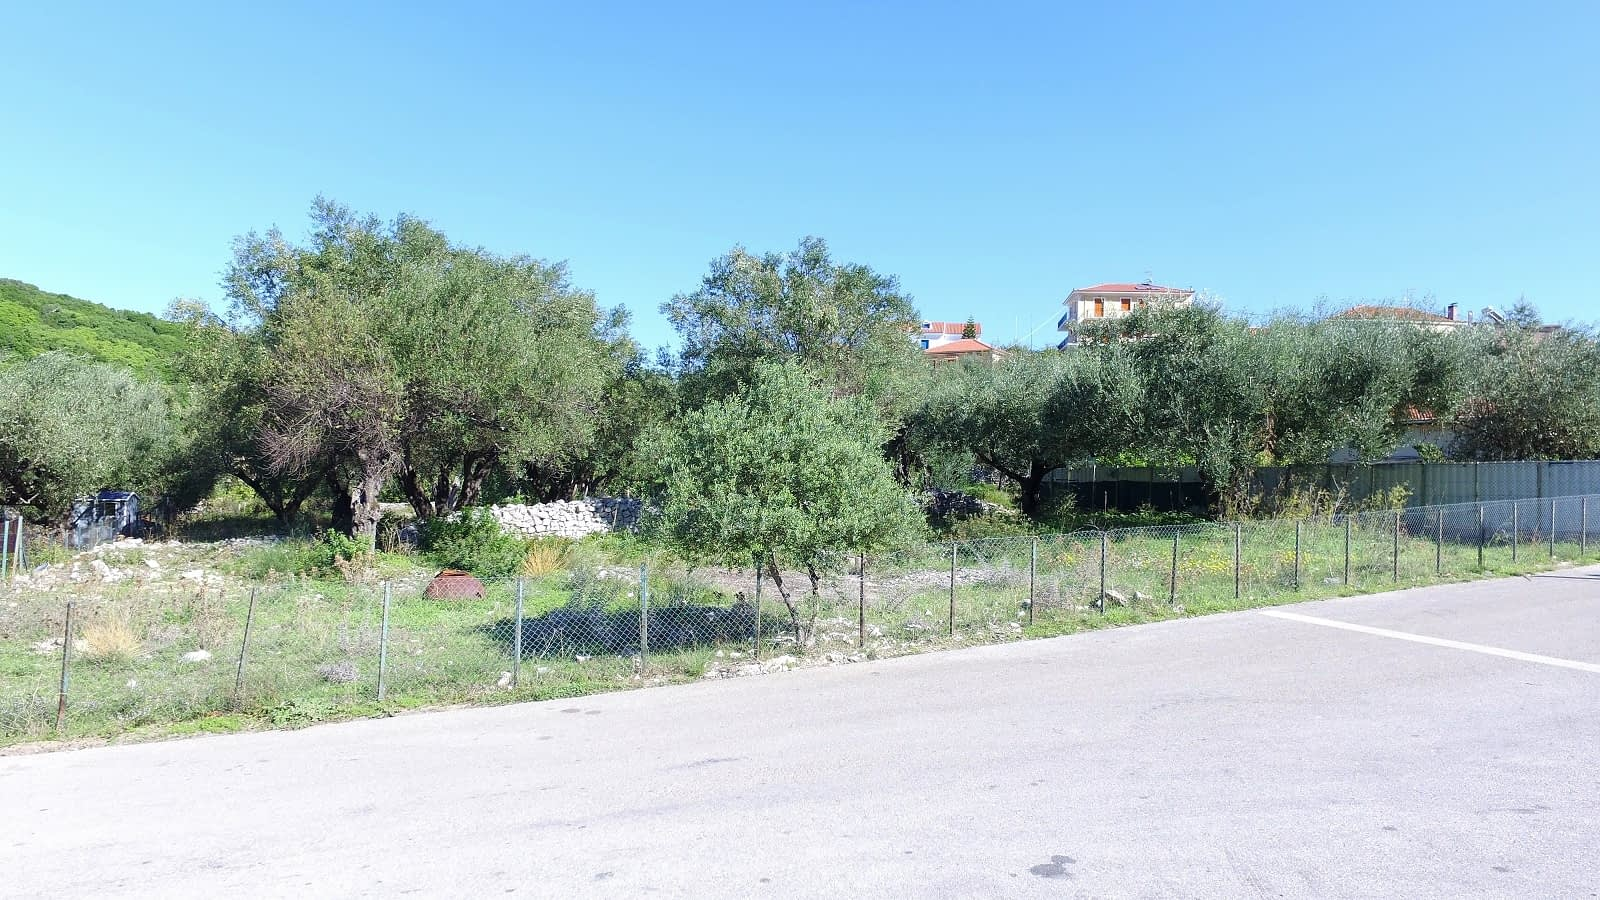 Terrain of land for sale Ithaca Greece Kioni